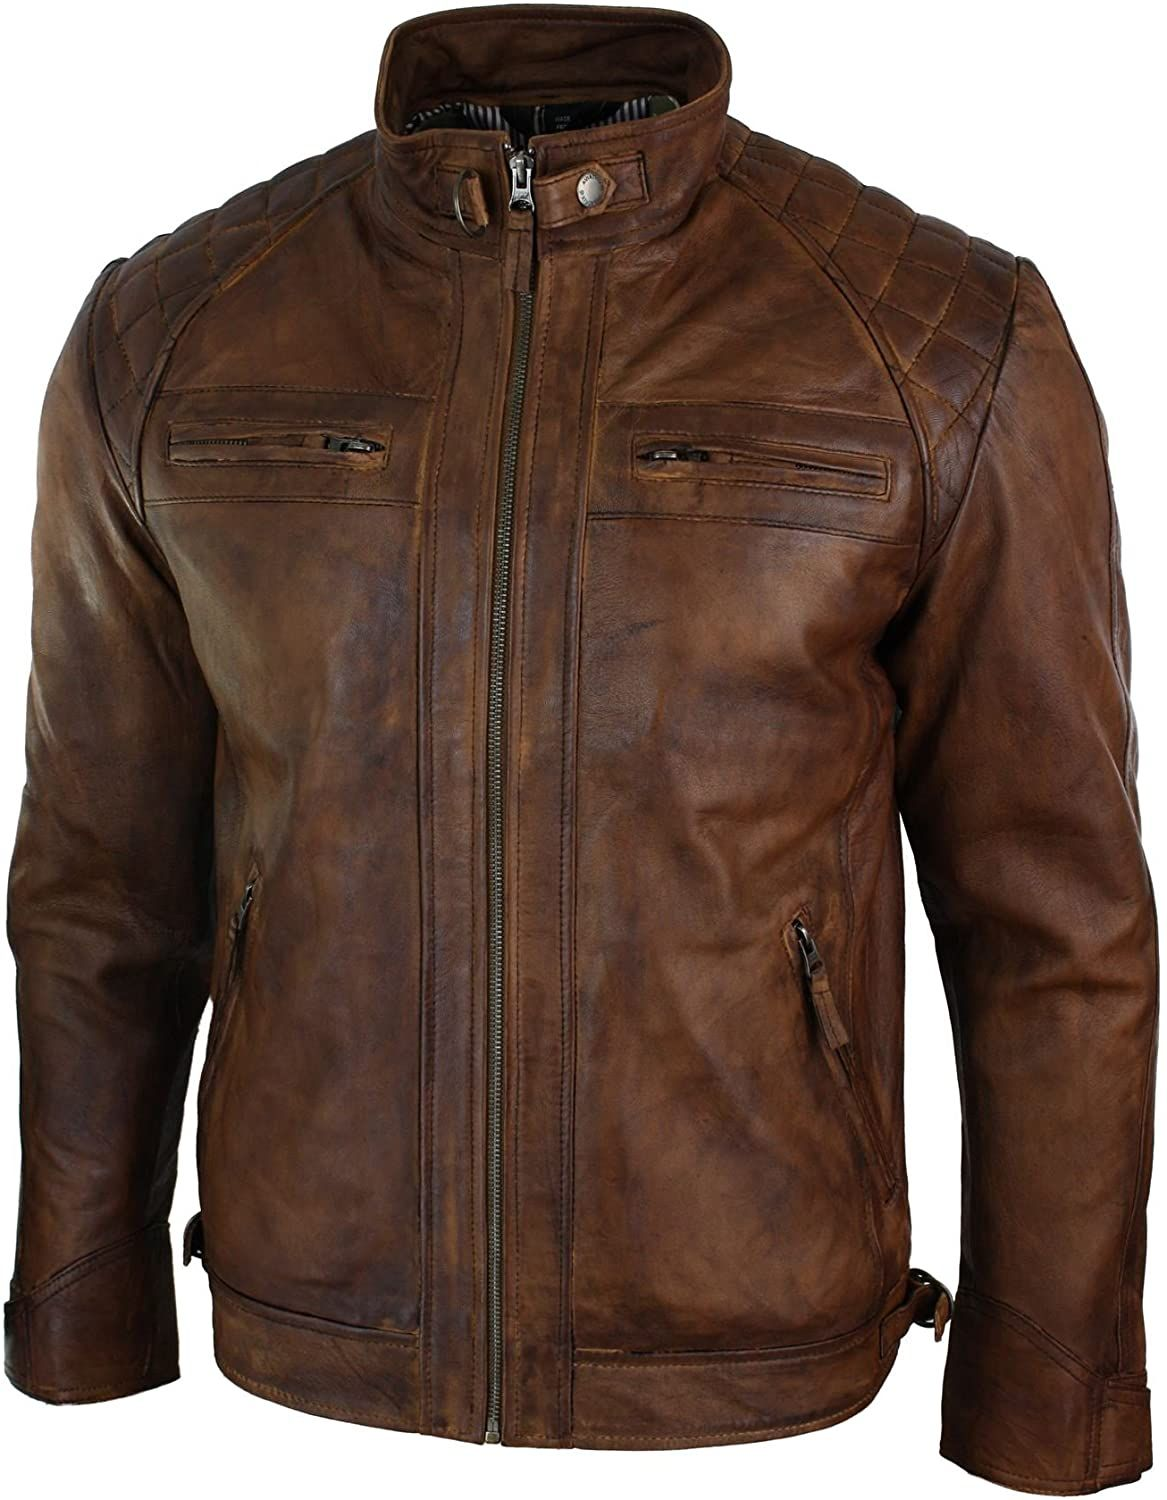 Mens Retro Style Zipped Biker Jacket Real Leather Washed Soft Tan Brown Casual Amazon Co Uk Clothing Waterproof Motorcycle Jacket Men S Retro Style Jackets [ 1500 x 1167 Pixel ]